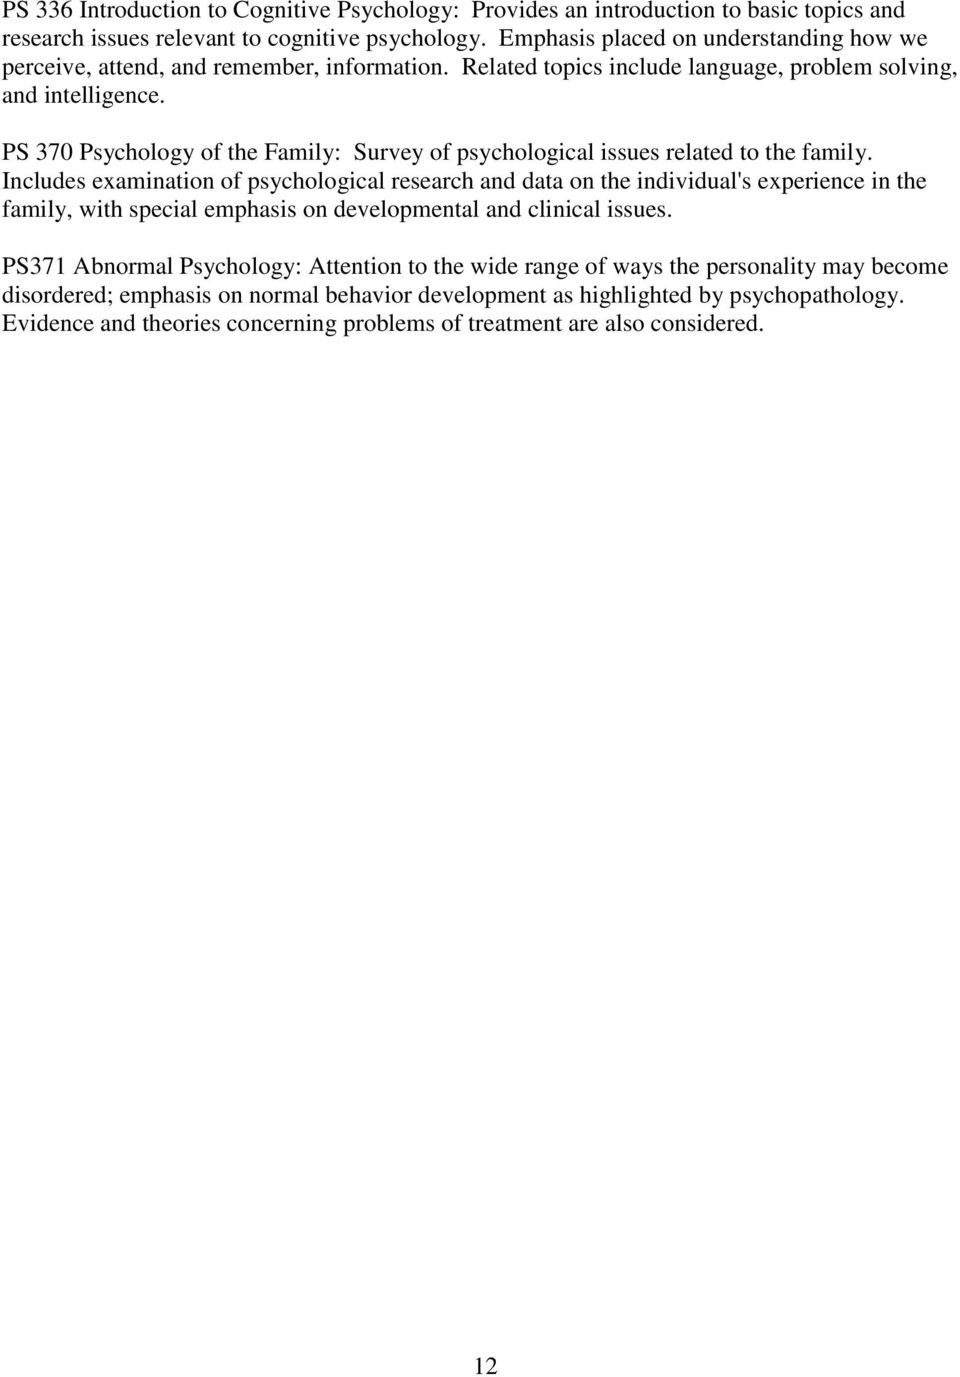 PS 370 Psychology of the Family: Survey of psychological issues related to the family.